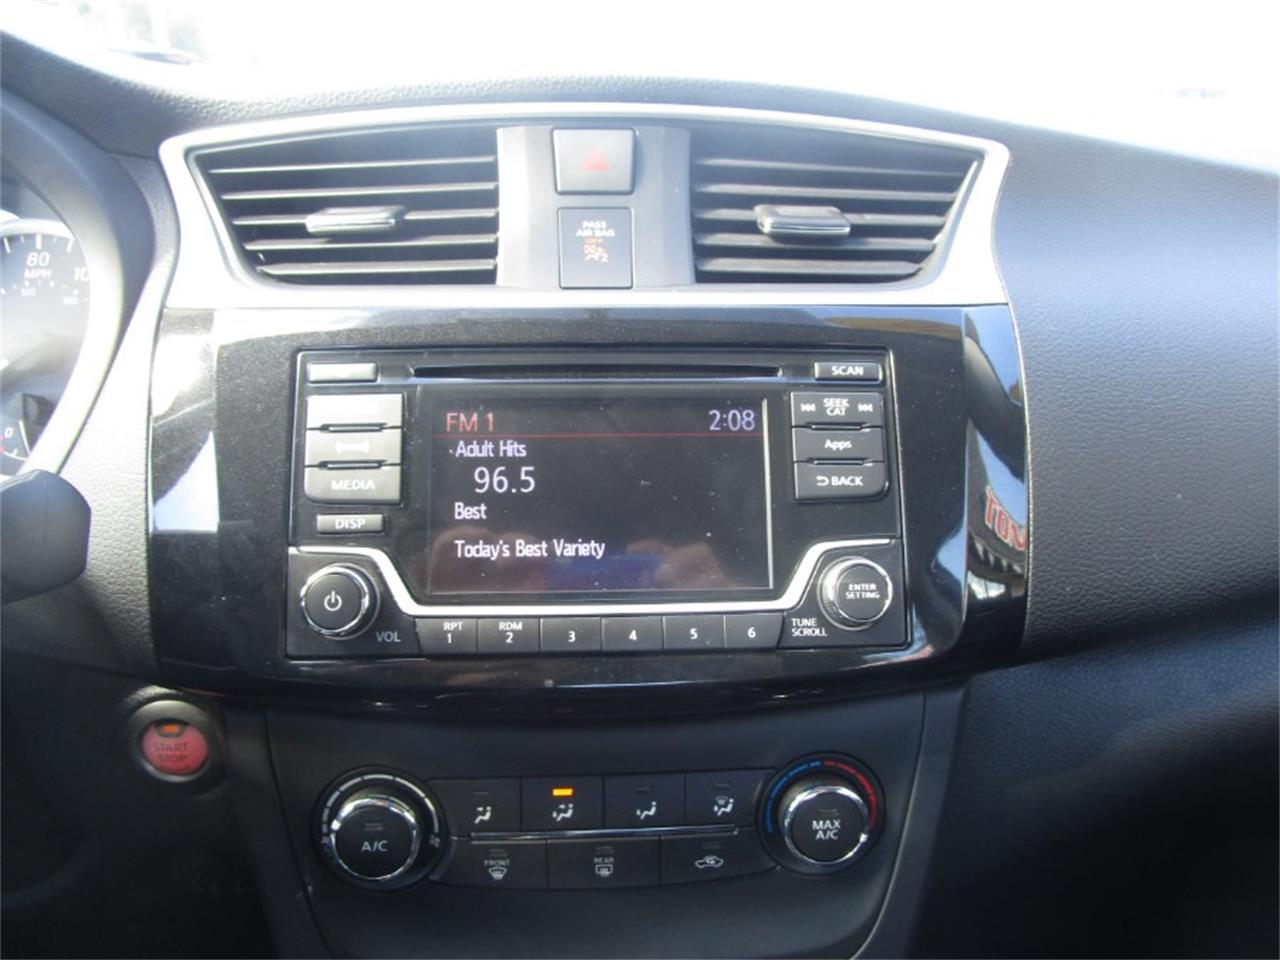 2016 Nissan Sentra (CC-1294510) for sale in Waterbury, Connecticut